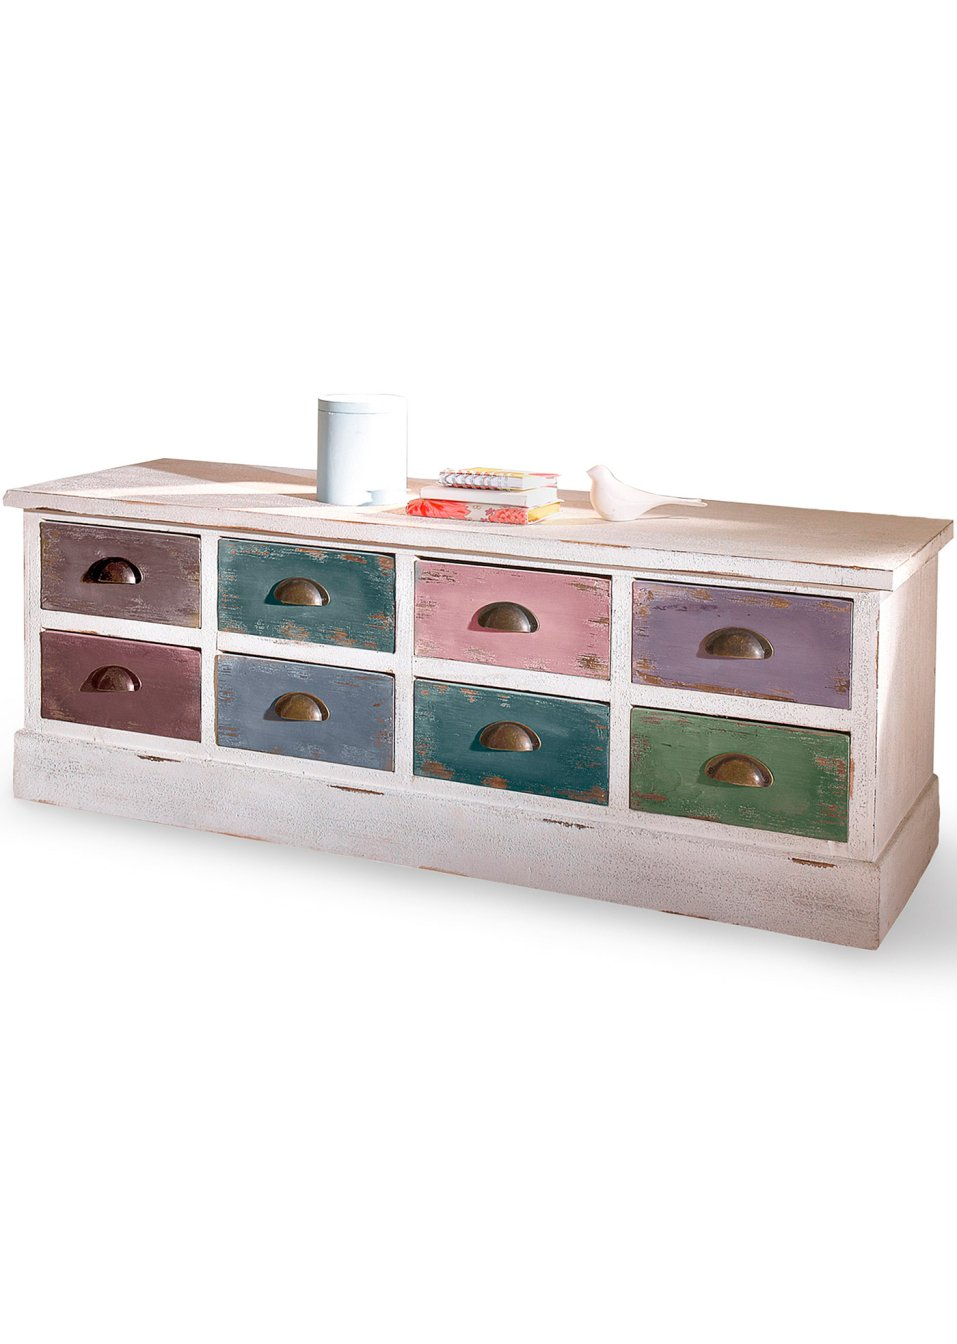 Kommode Siena Wei Bunt Home Collection